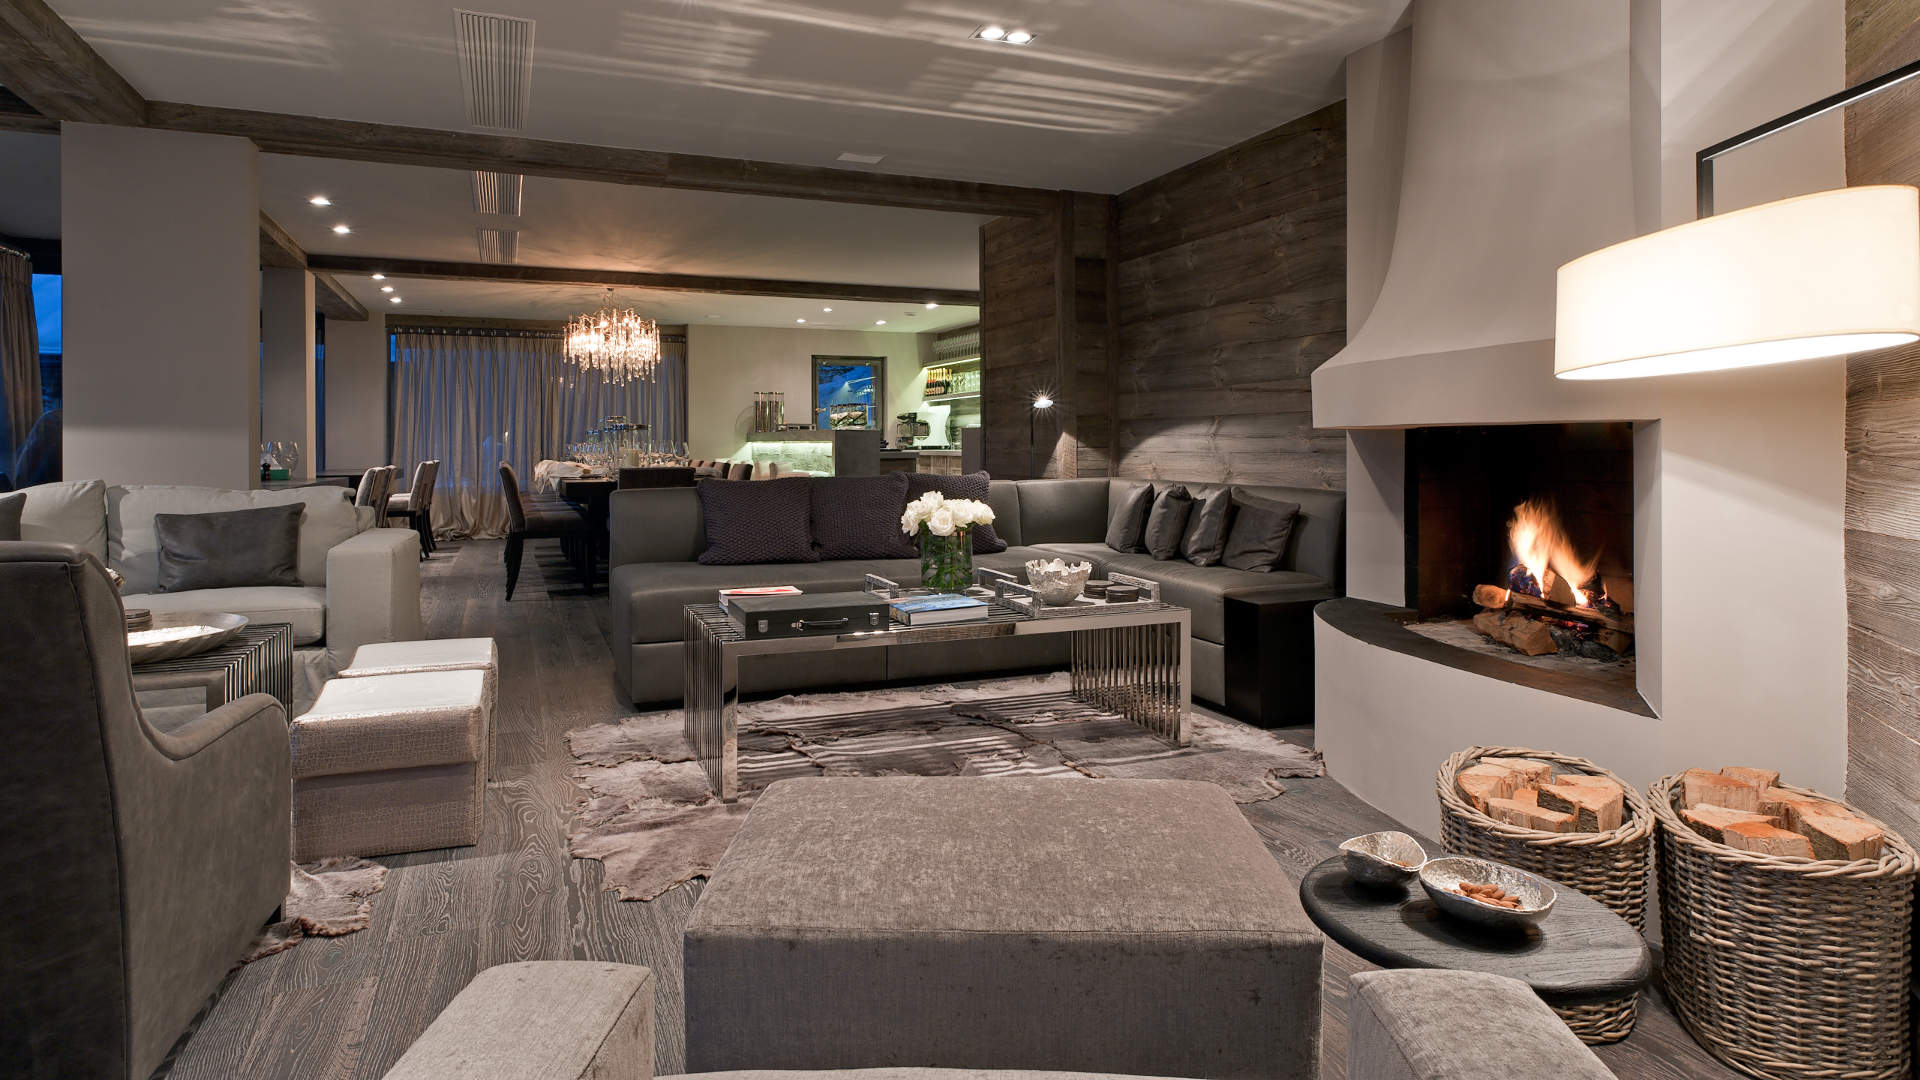 Chalet number 14 living room with roaring fire and luxury interiors